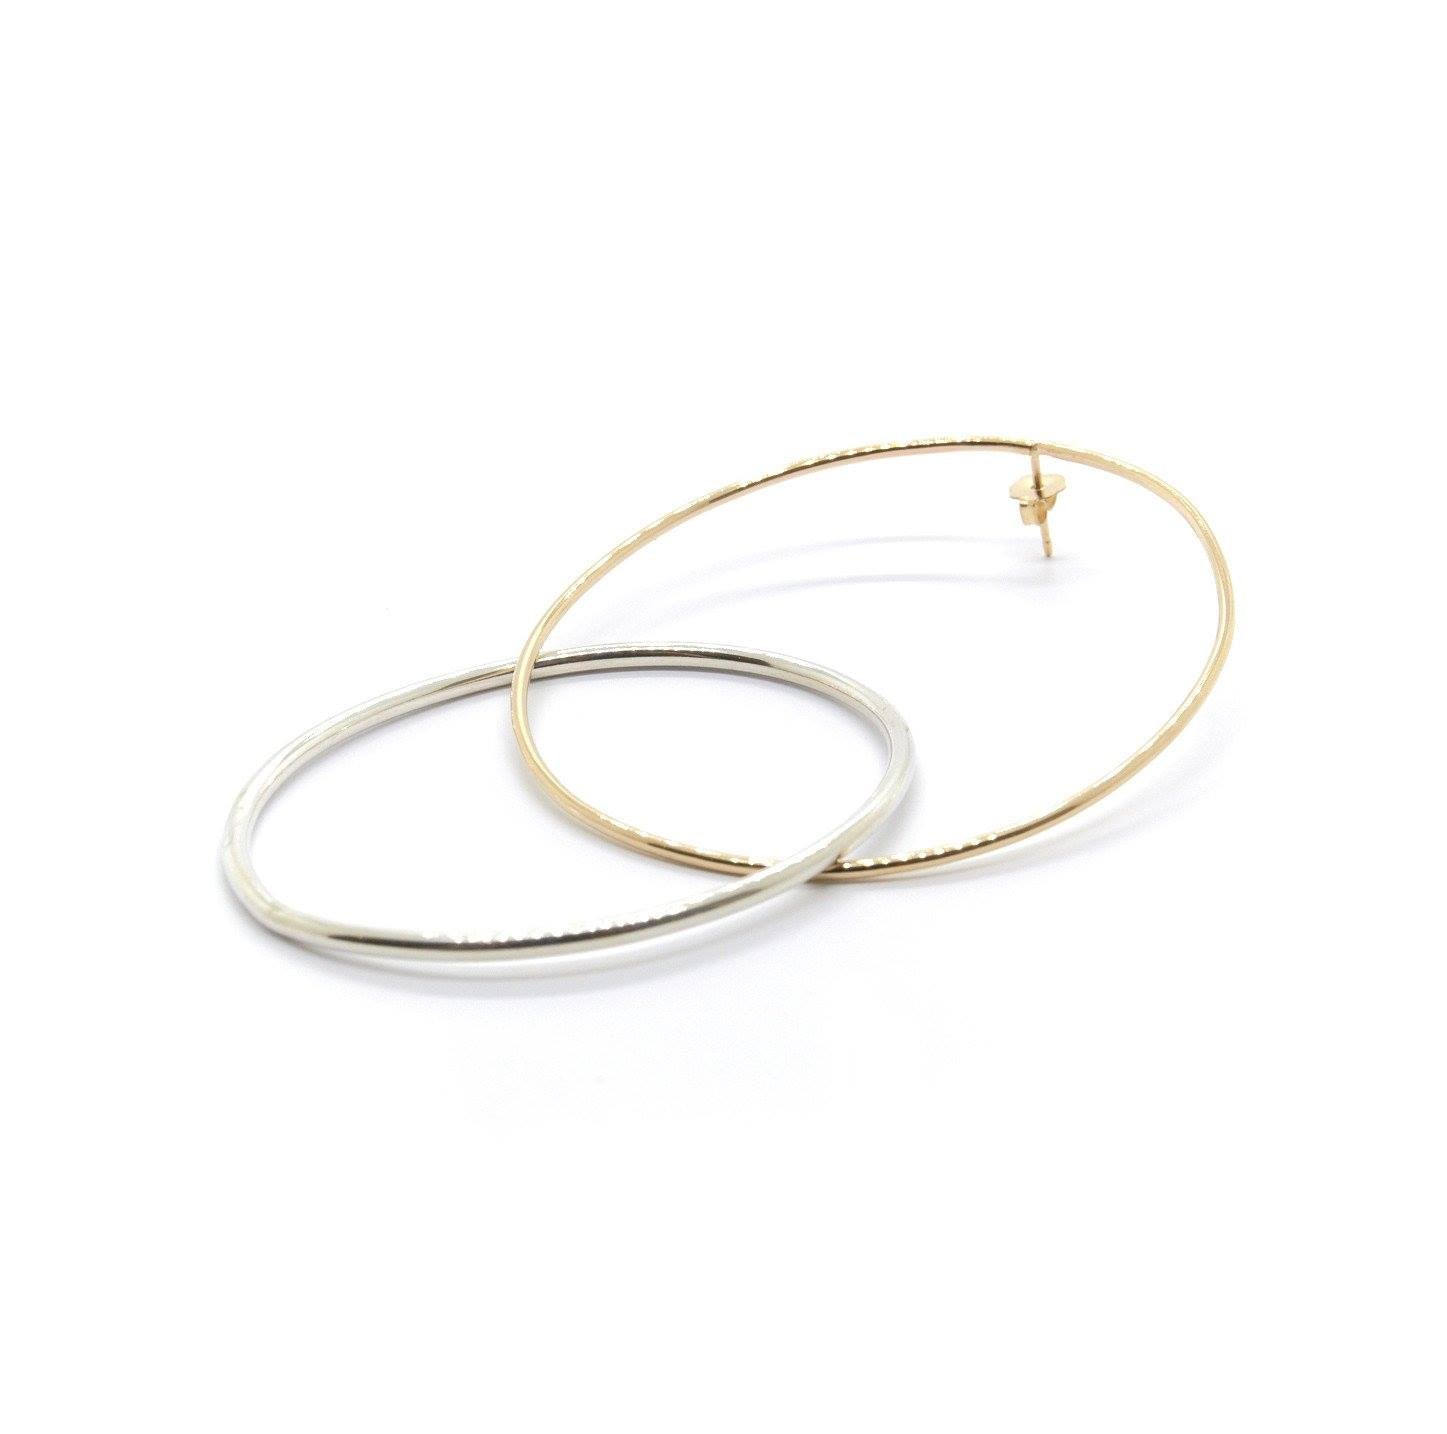 XL Loop Through Oval Hoops